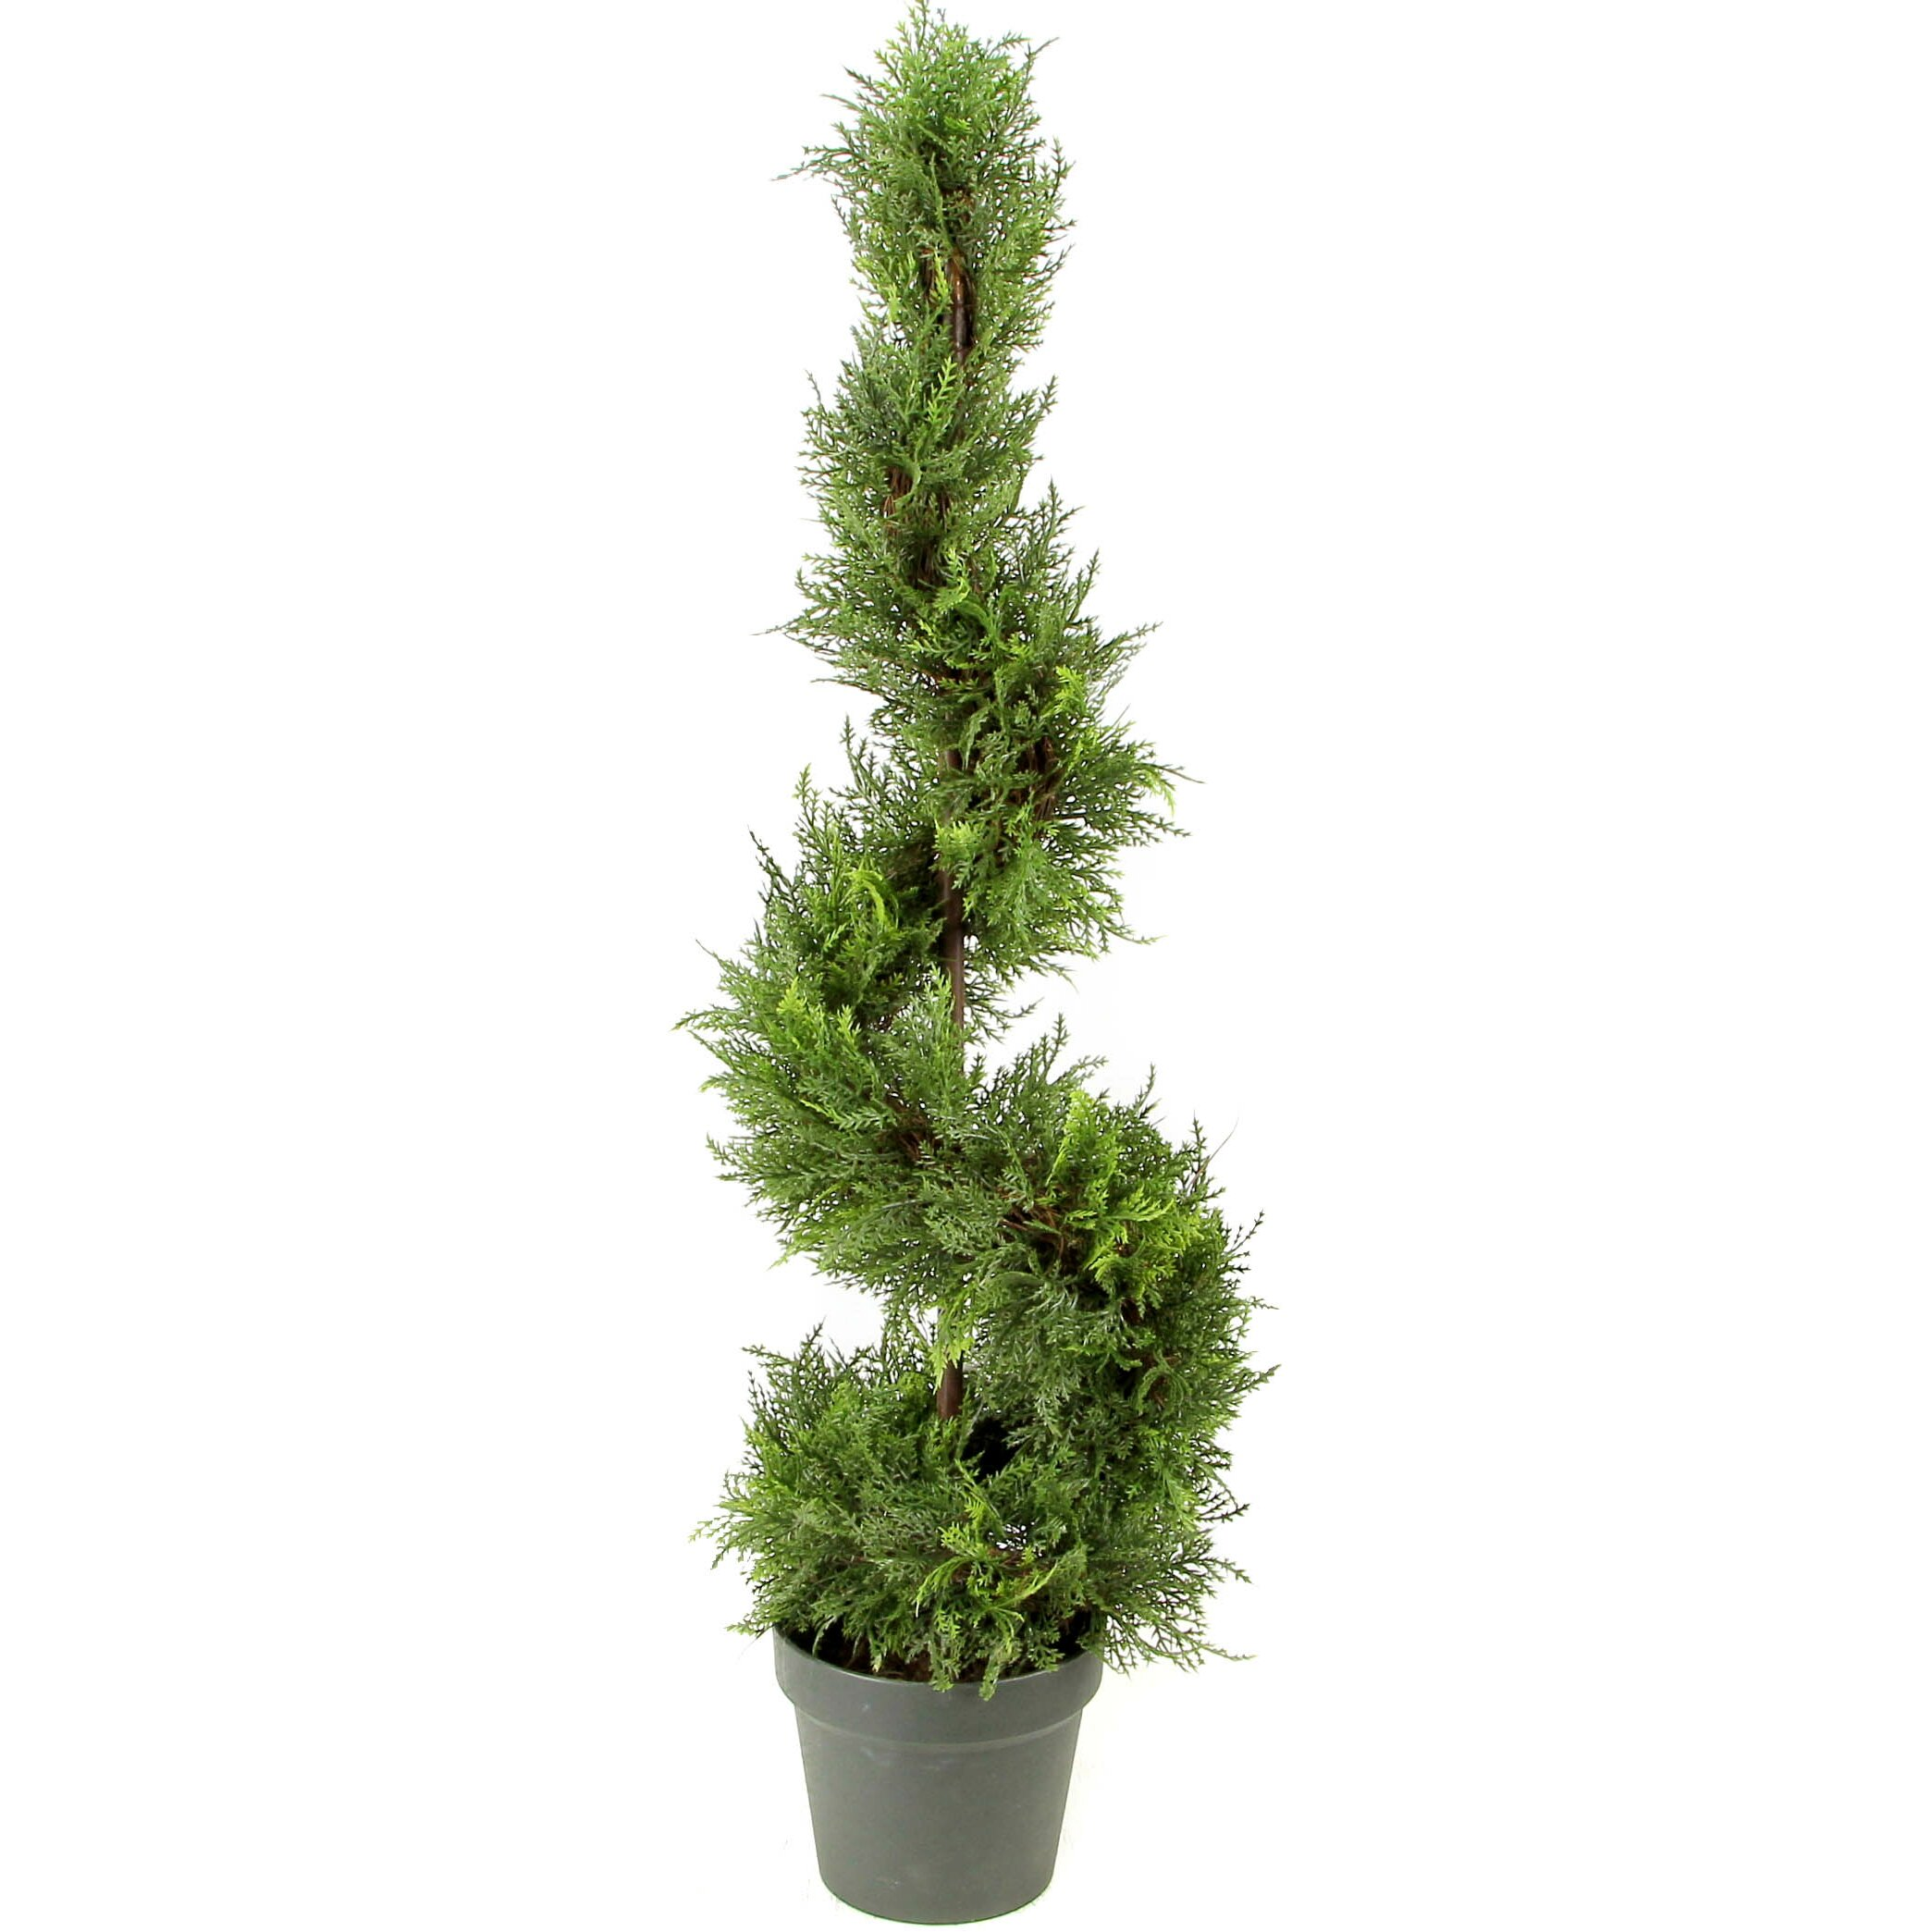 Topiary Spiral Trees: AdmiredbyNature Artificial Cypress Leaf Spiral Topiary